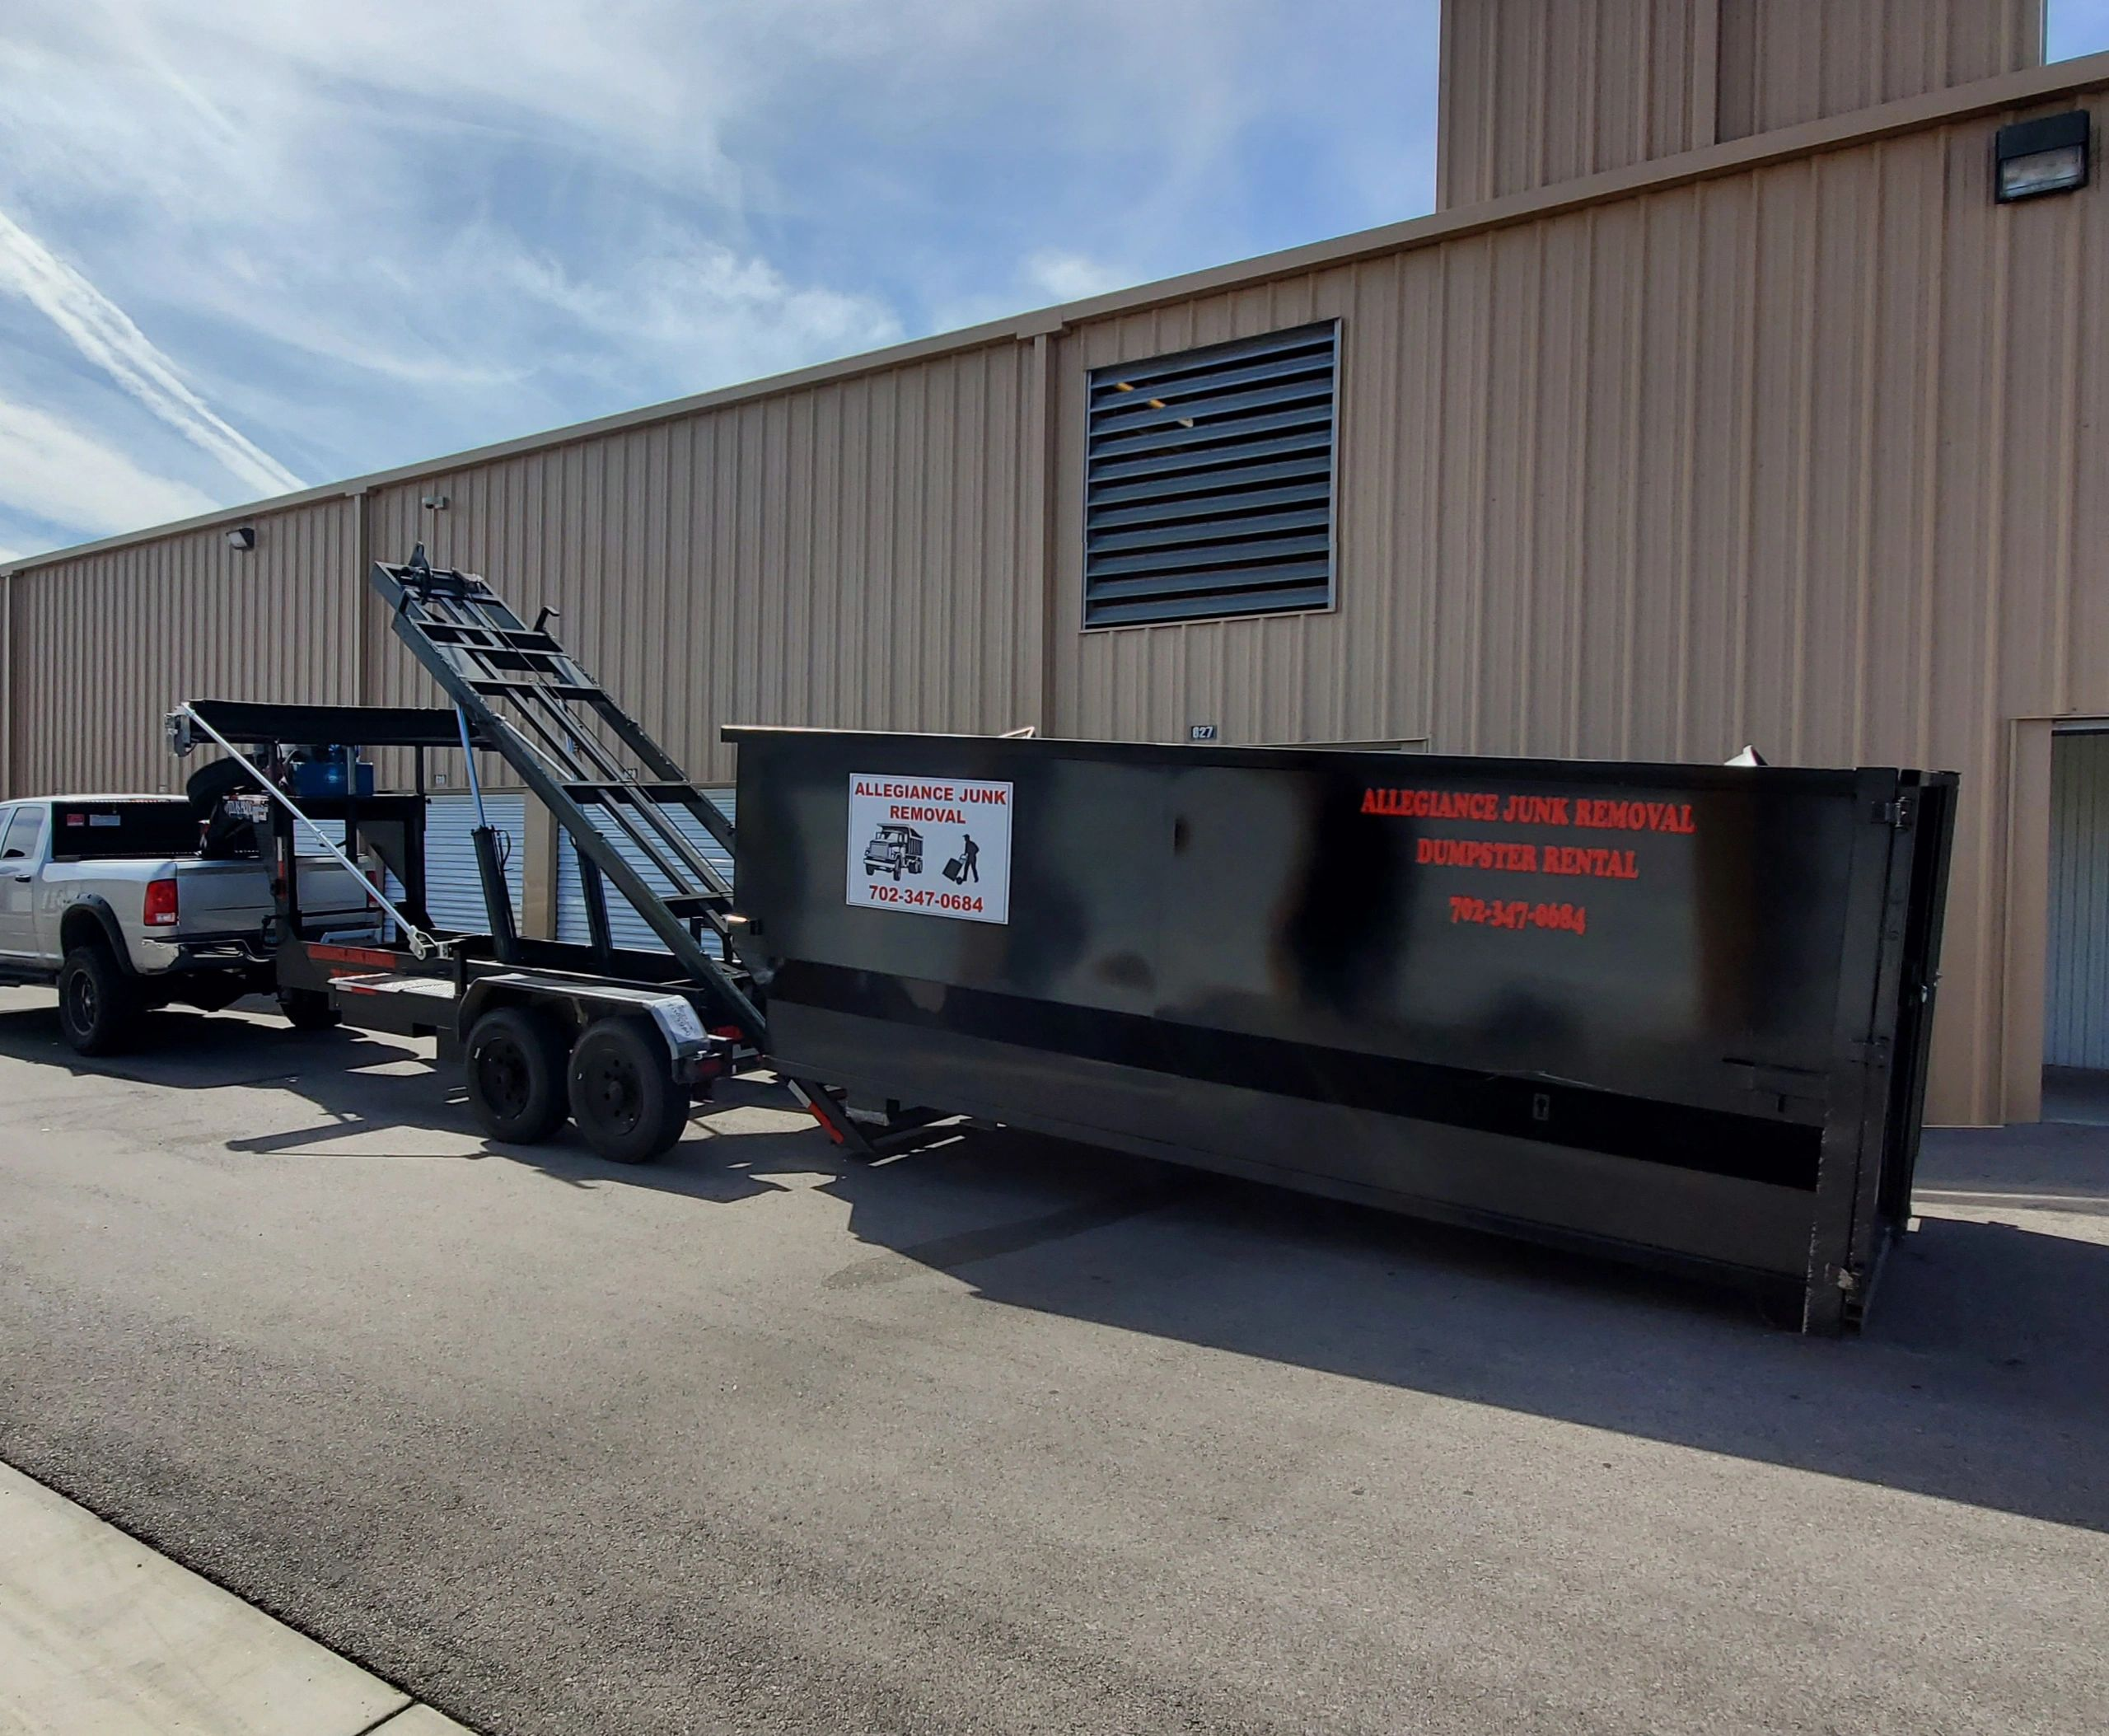 Dumpster Rentals In Las Vegas, Henderson, Paradise, Boulder City, North Las Vegas, and Summerlin